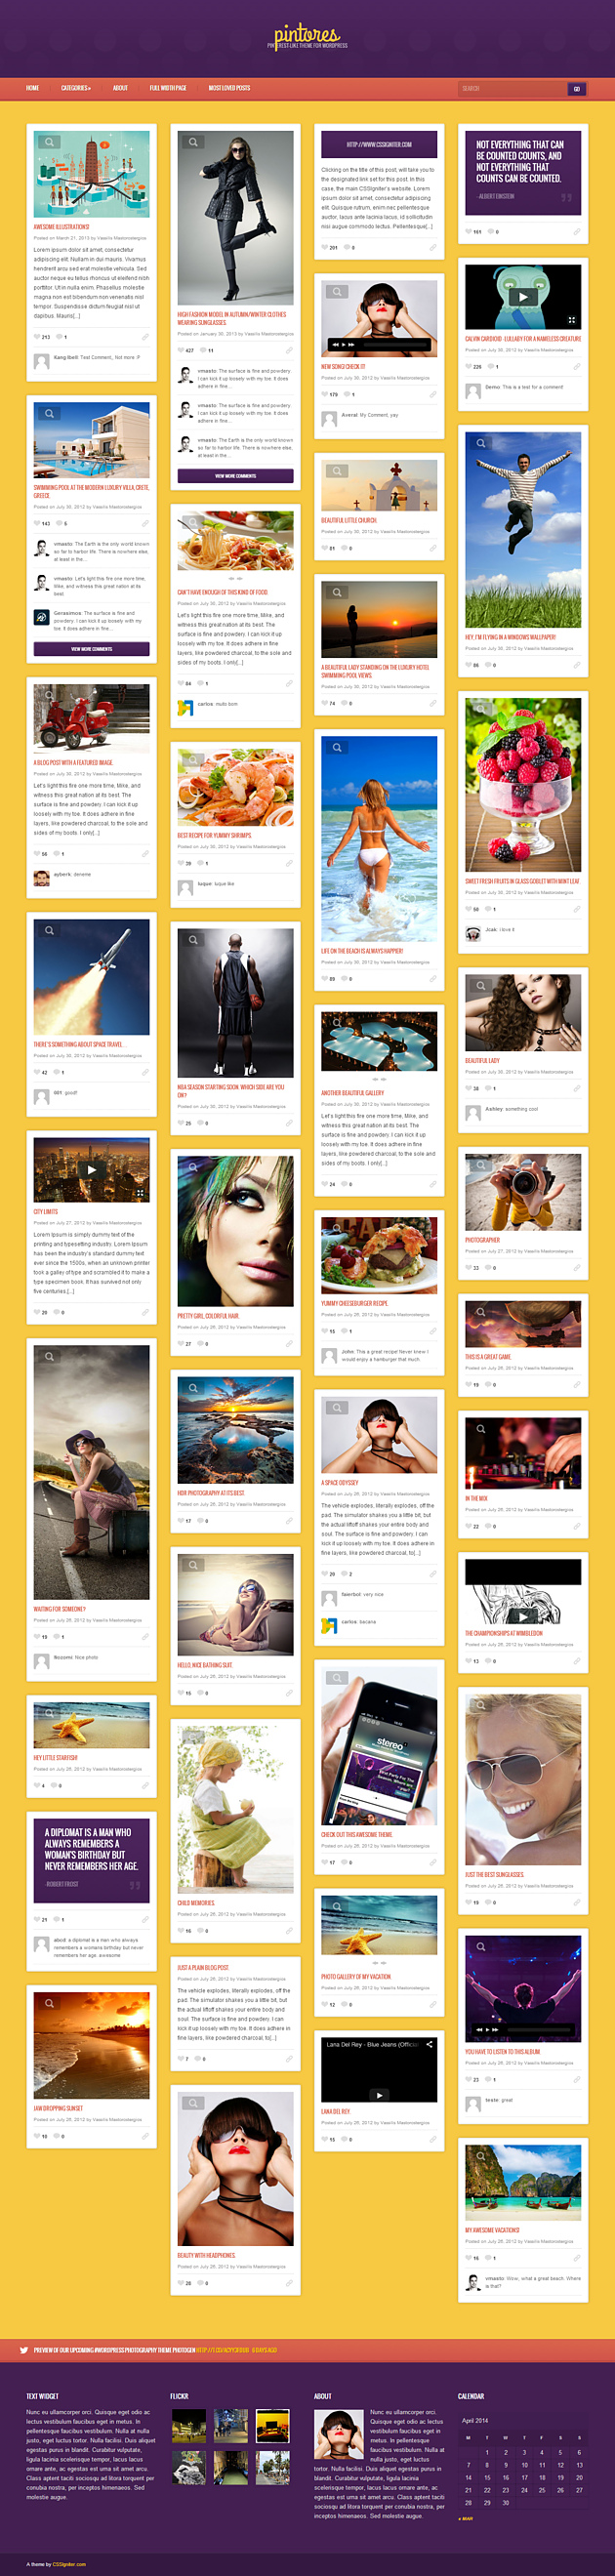 pintores pinterest style wordPress theme